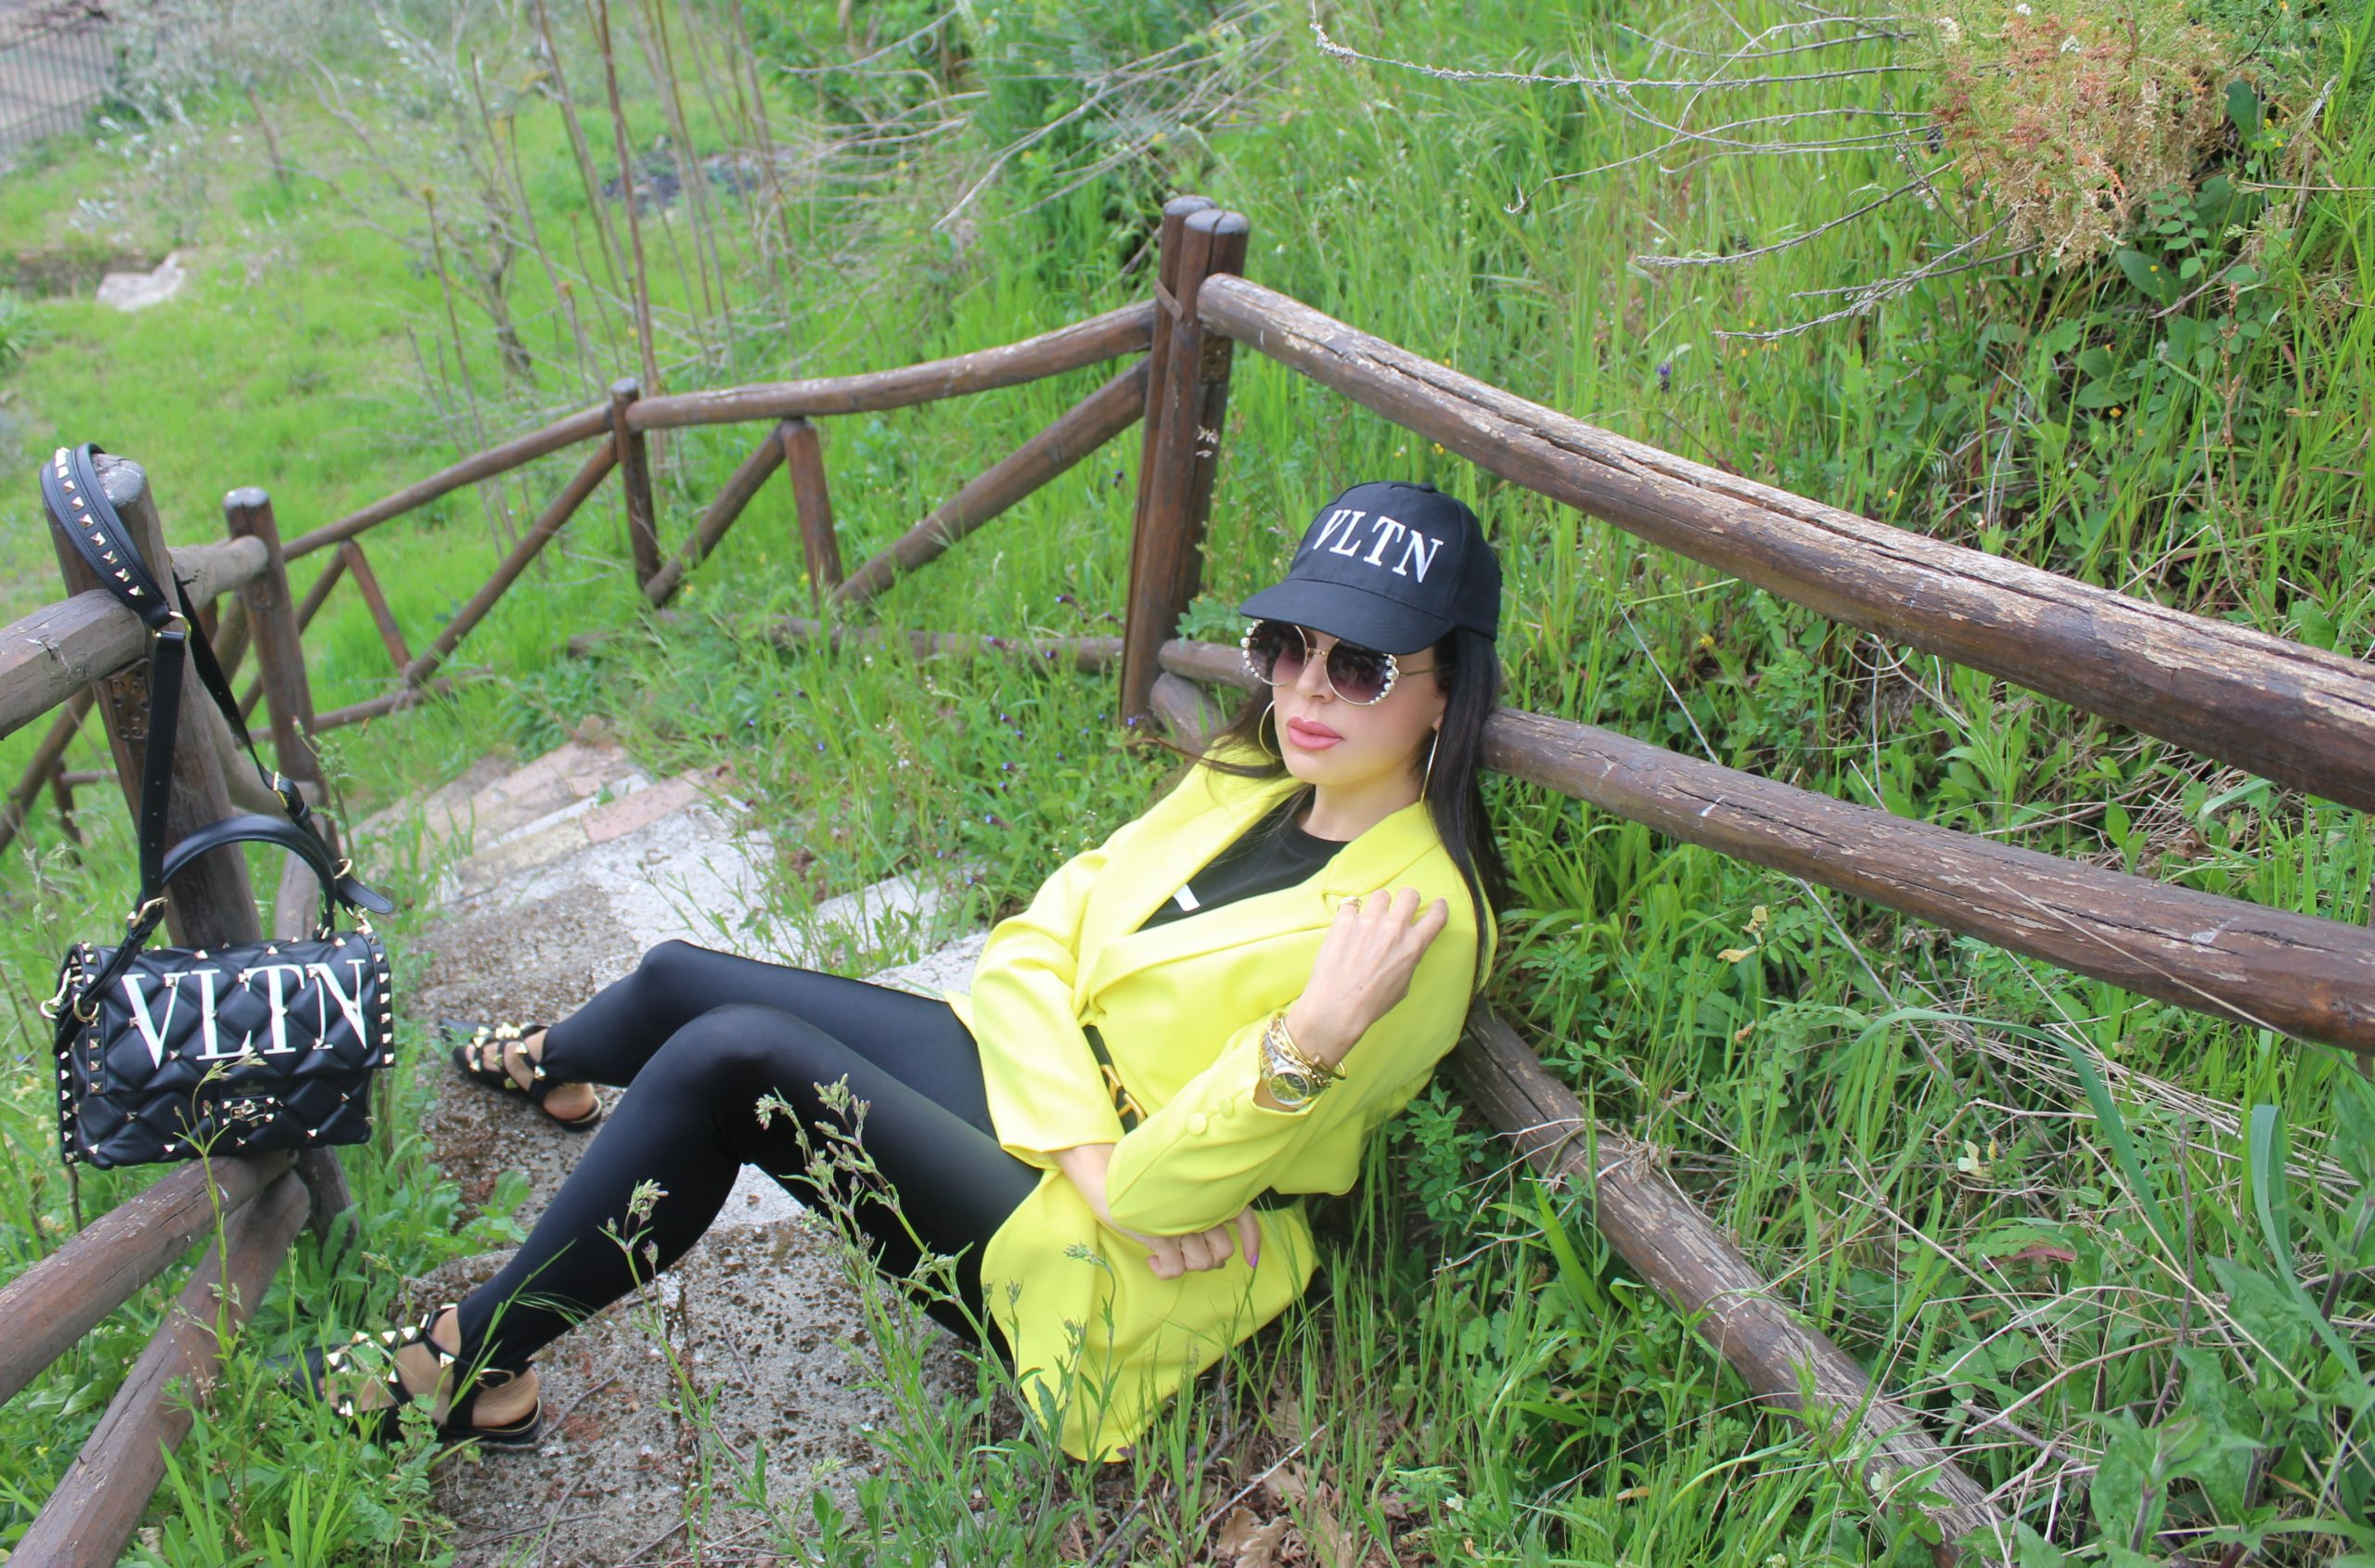 Tailored Jacket Yellow and Black Trend Valentino Accessories Paola Luretano